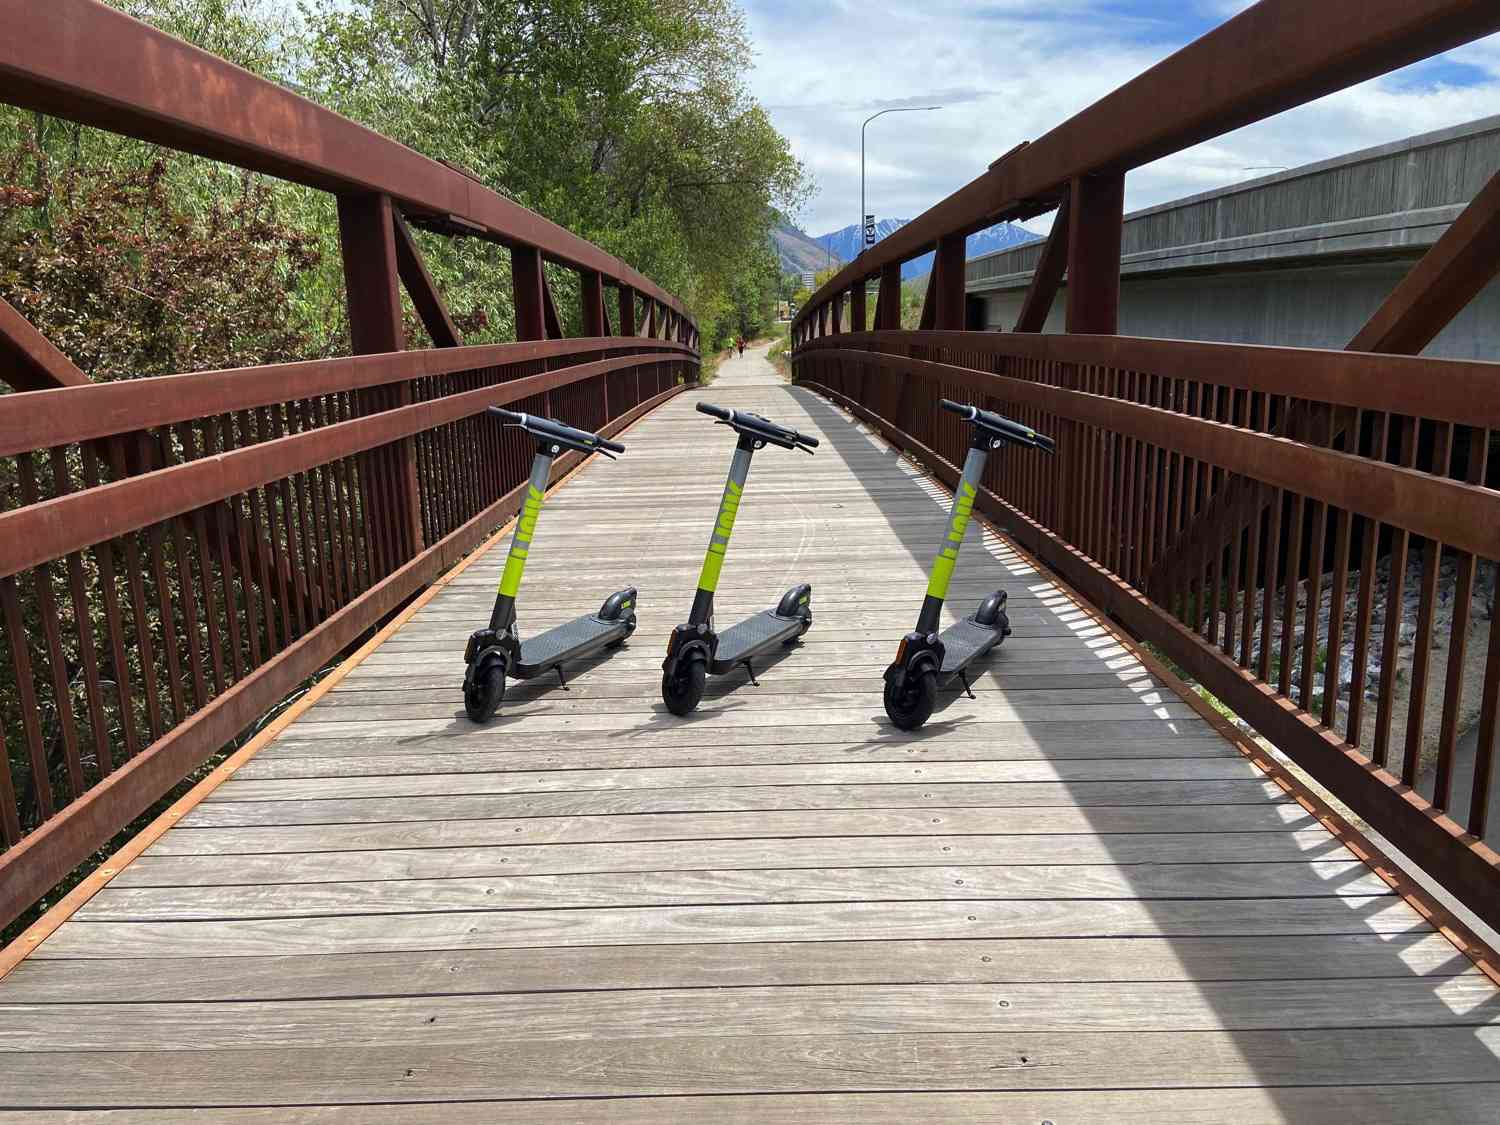 3 scooters parked in a walkway